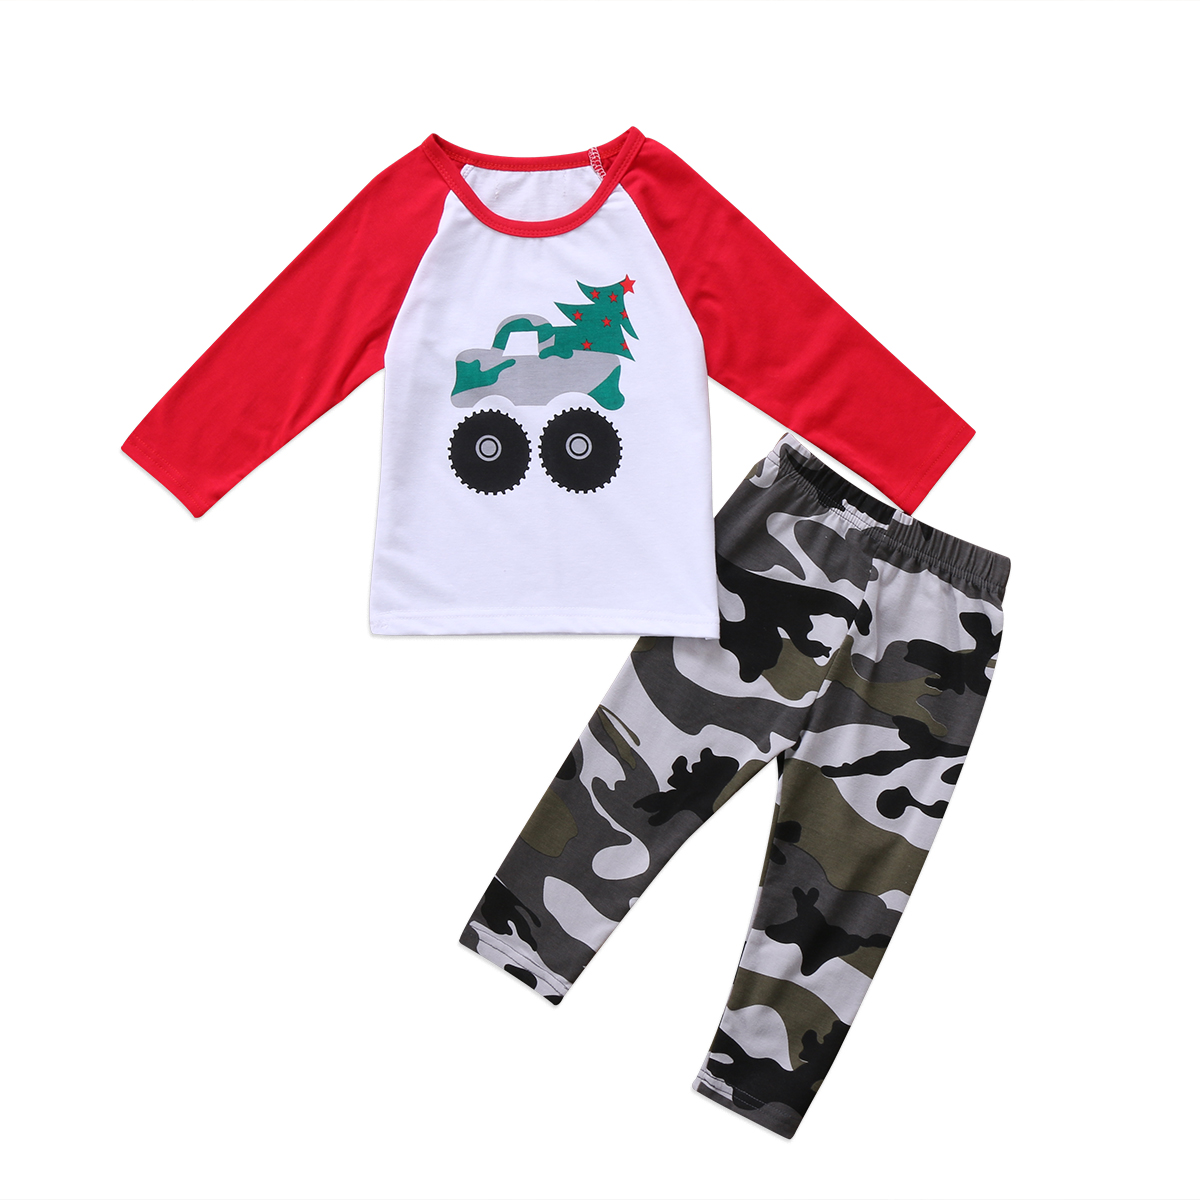 2Pcs Set Toddler Infant Kid Baby Boys Christmas Clothing Long sleeve T-shirt Tops+ Camouflage Pants Outfits Clothes Set 2pcs set autumn cartoon rabbit toddler baby kid girls long sleeve suit t shirt tops pants costume tracksuit outfits 1 5t